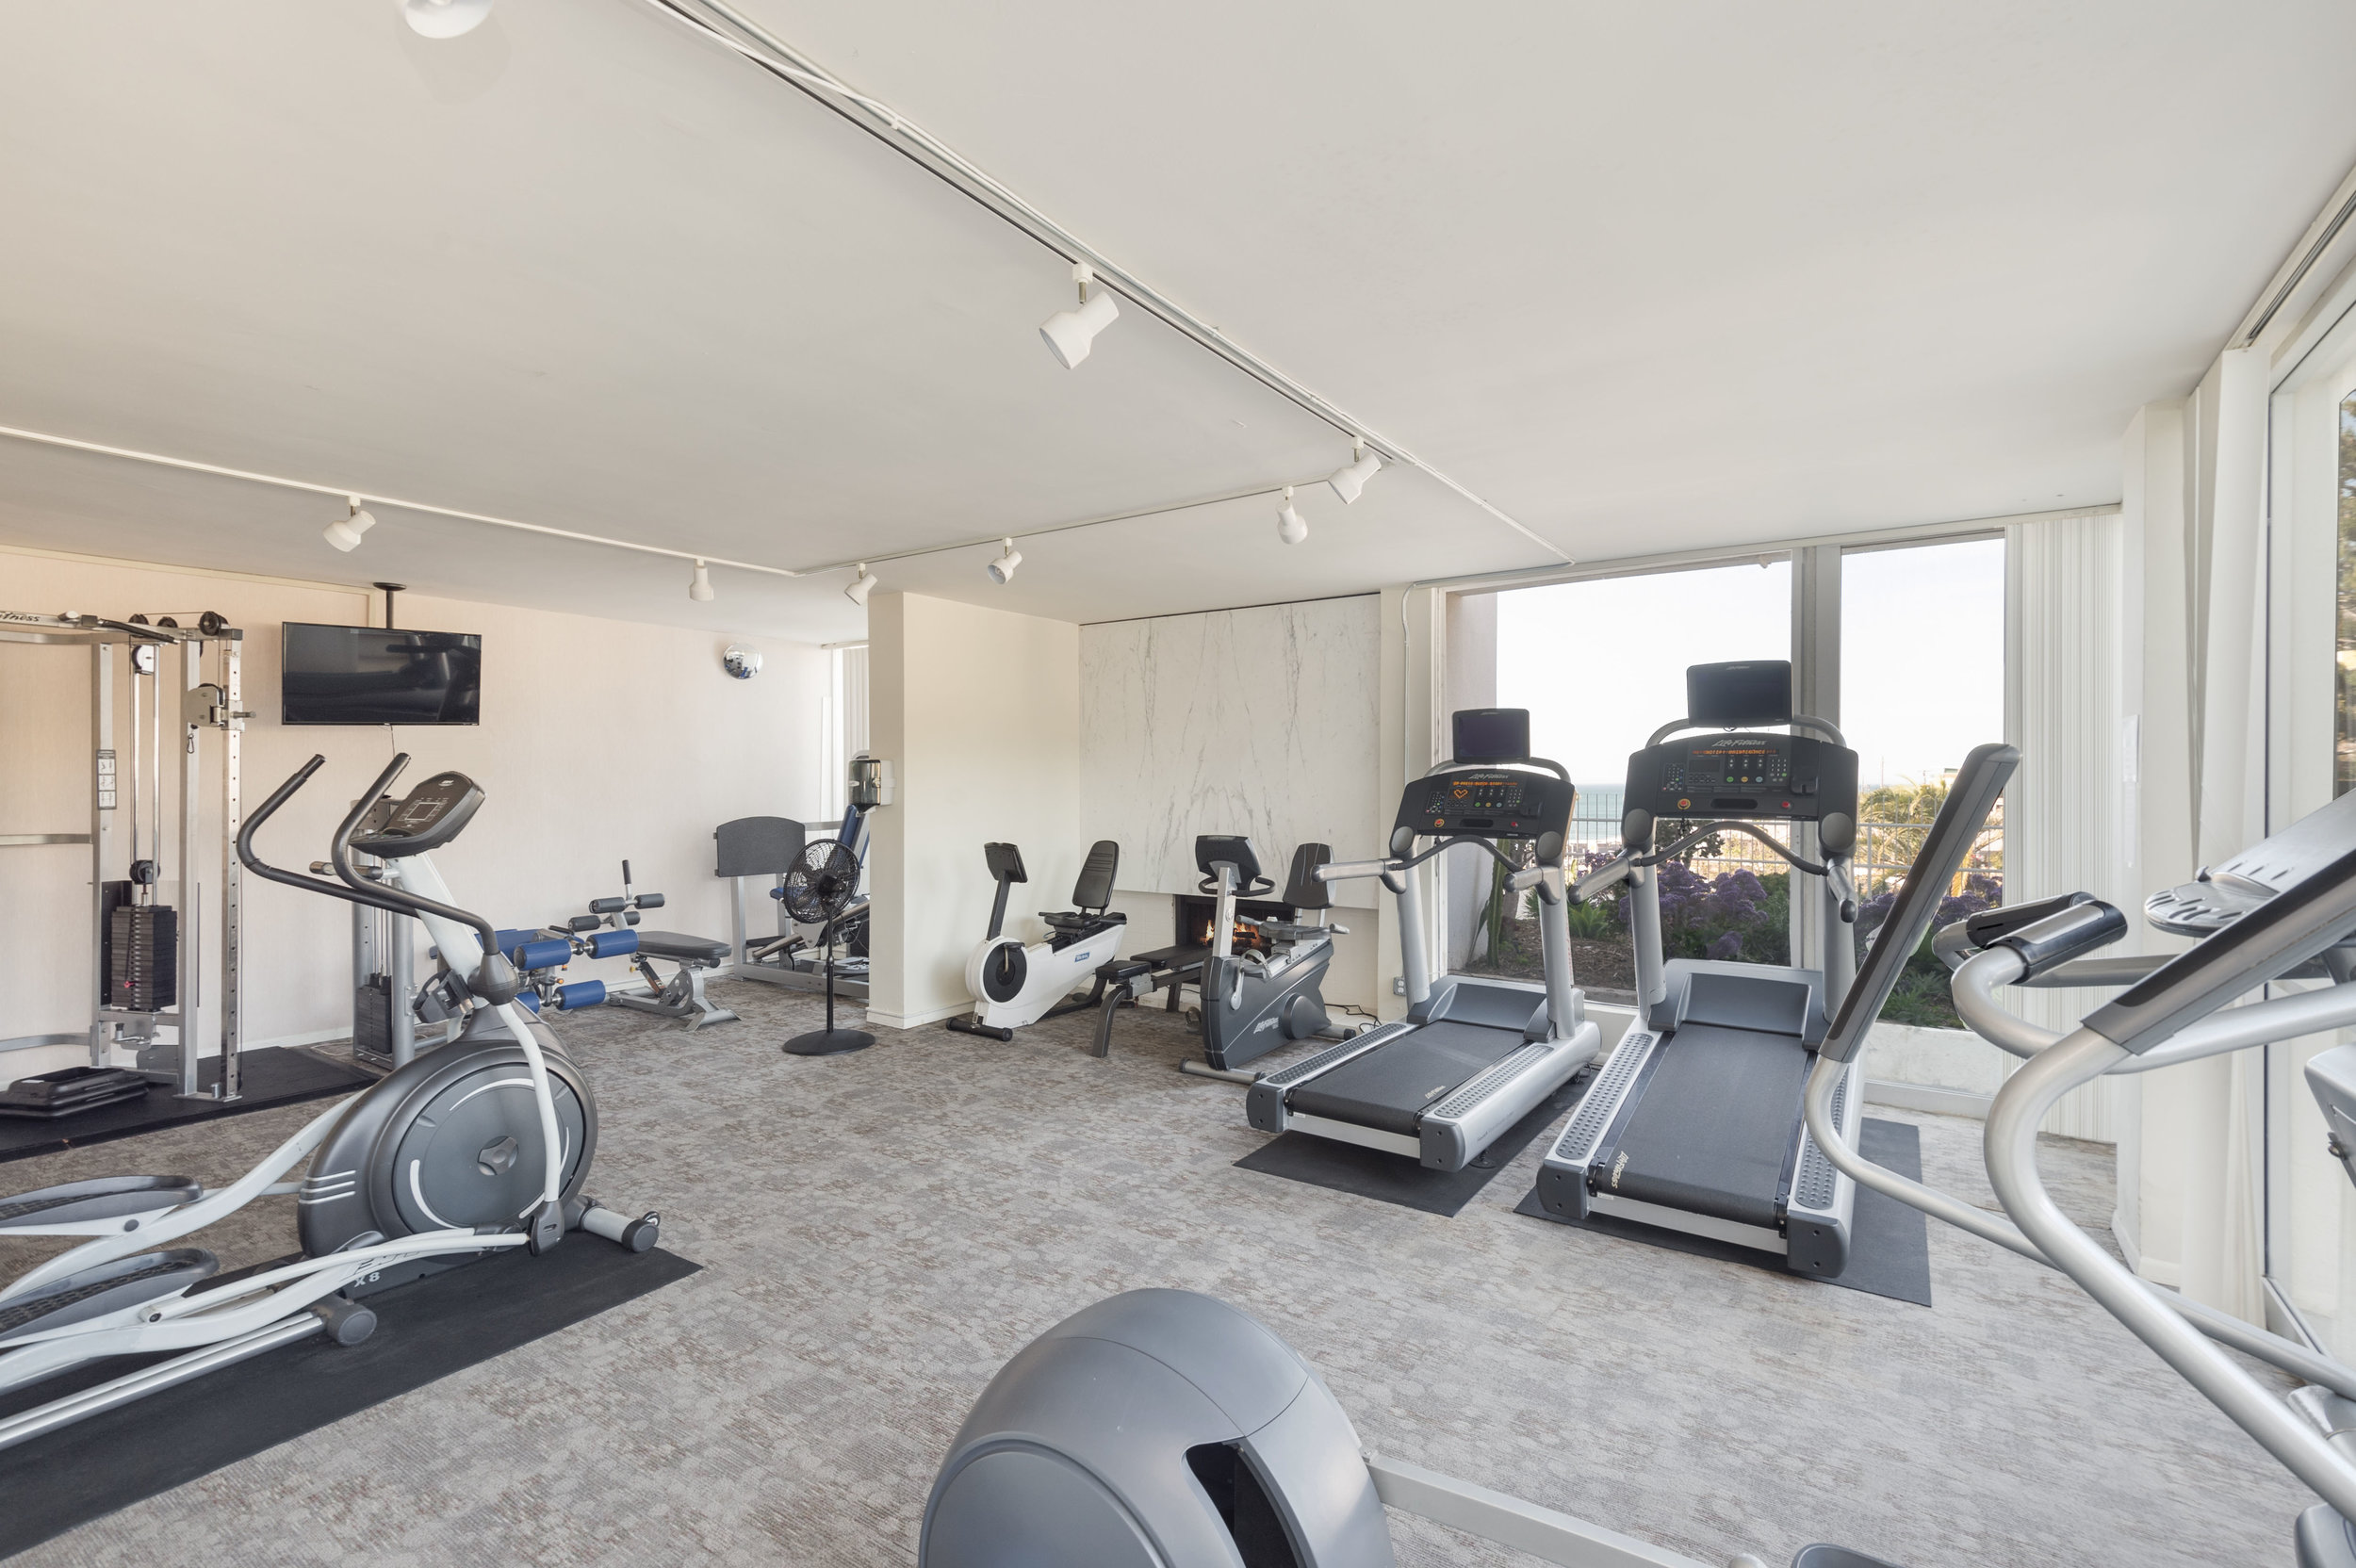 010 Gym 17350 West Sunset Boulevard For Sale Lease The Malibu Life Team Luxury Real Estate.jpg